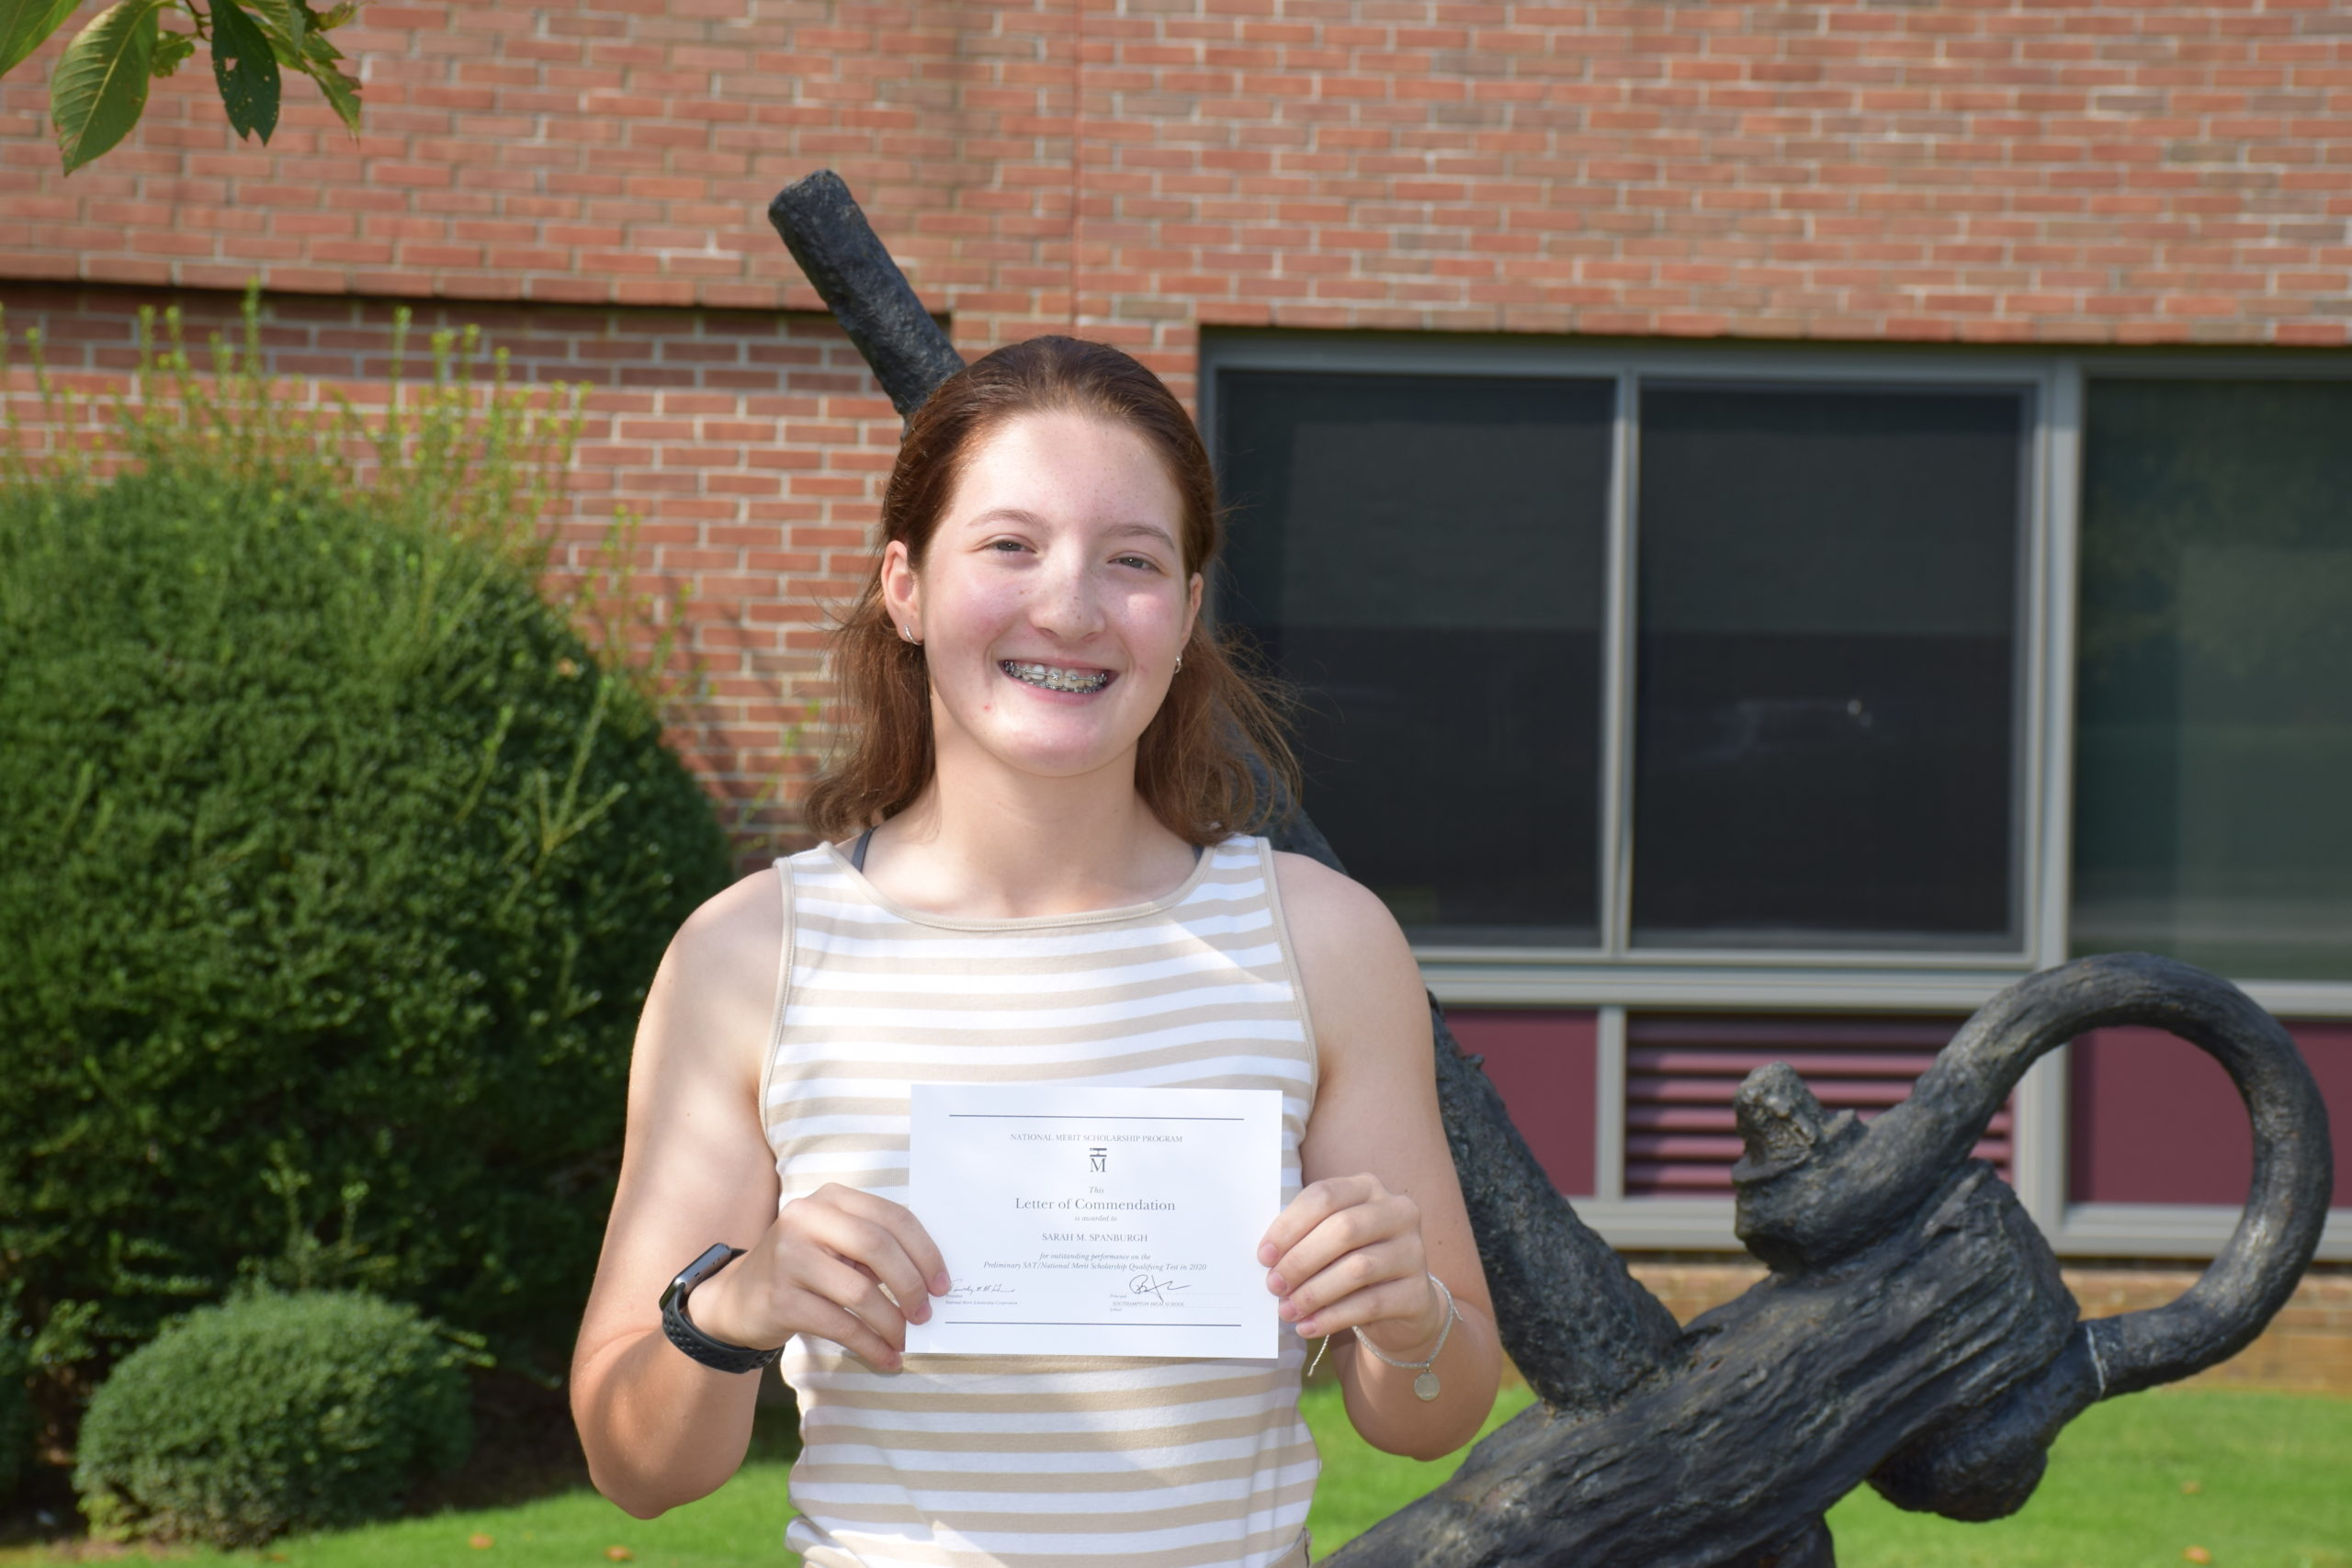 Southampton High School senior Sarah Spanburg has been named a National Merit Commended Student.